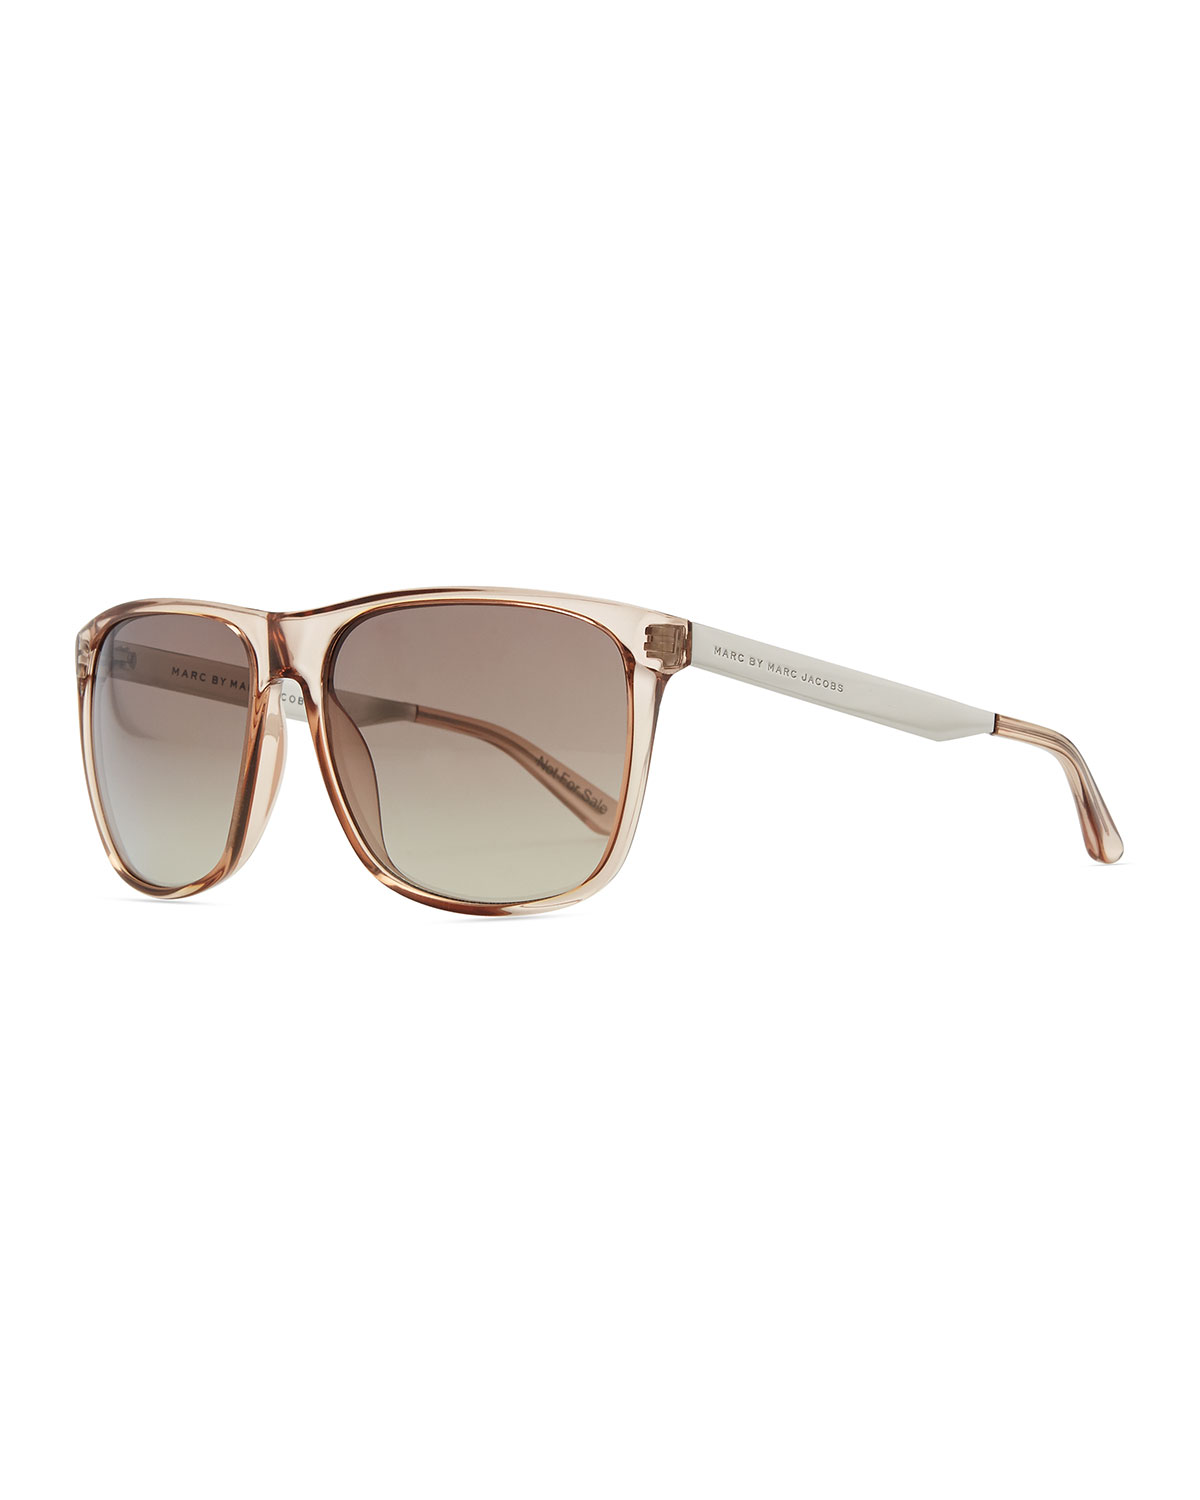 Clear Plastic Rectangle Sunglasses, Champagne